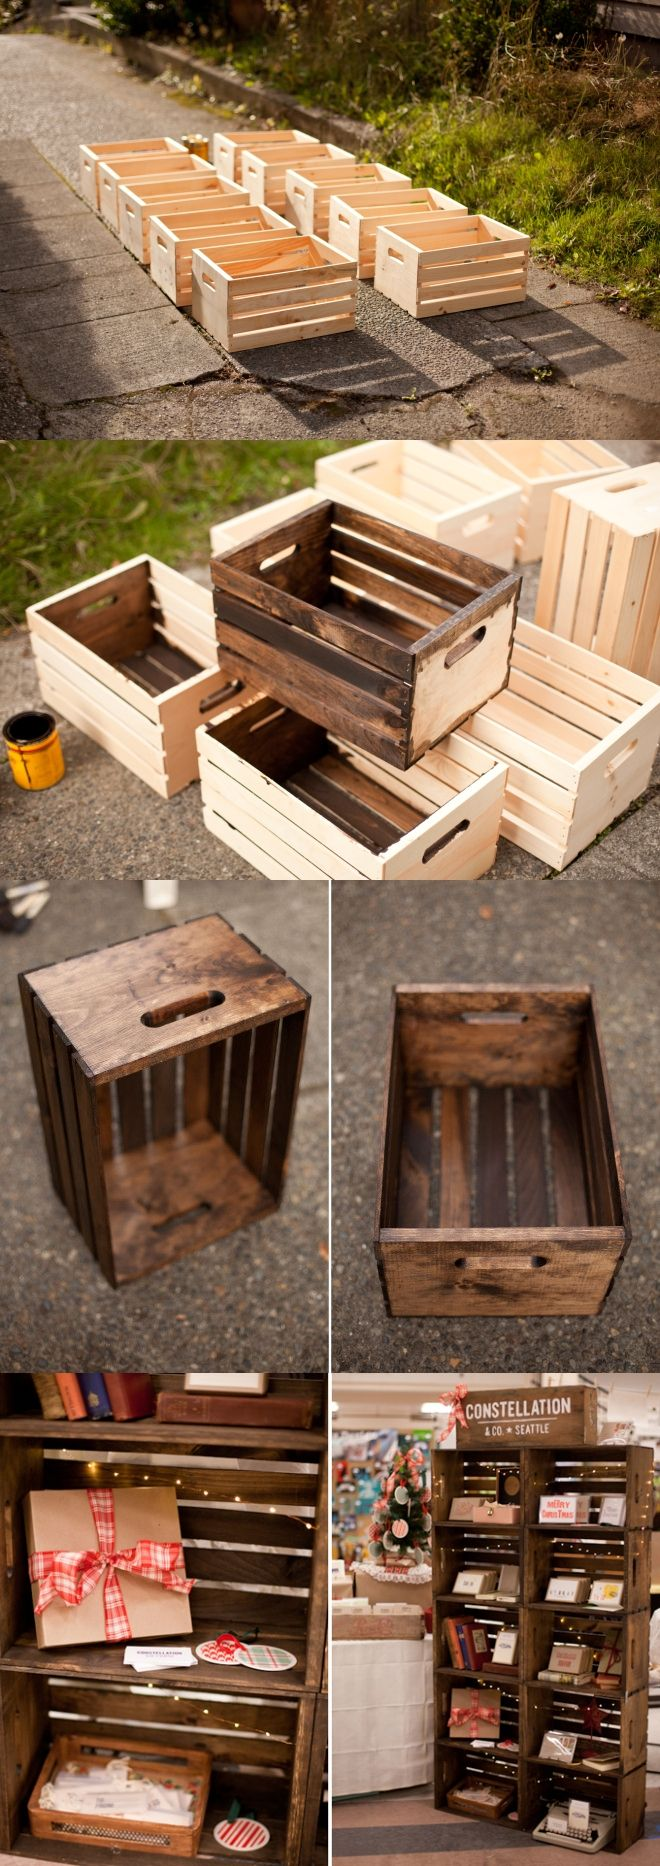 Apple crates display case. This is the kind of bookcase I want to make for the bedroom!